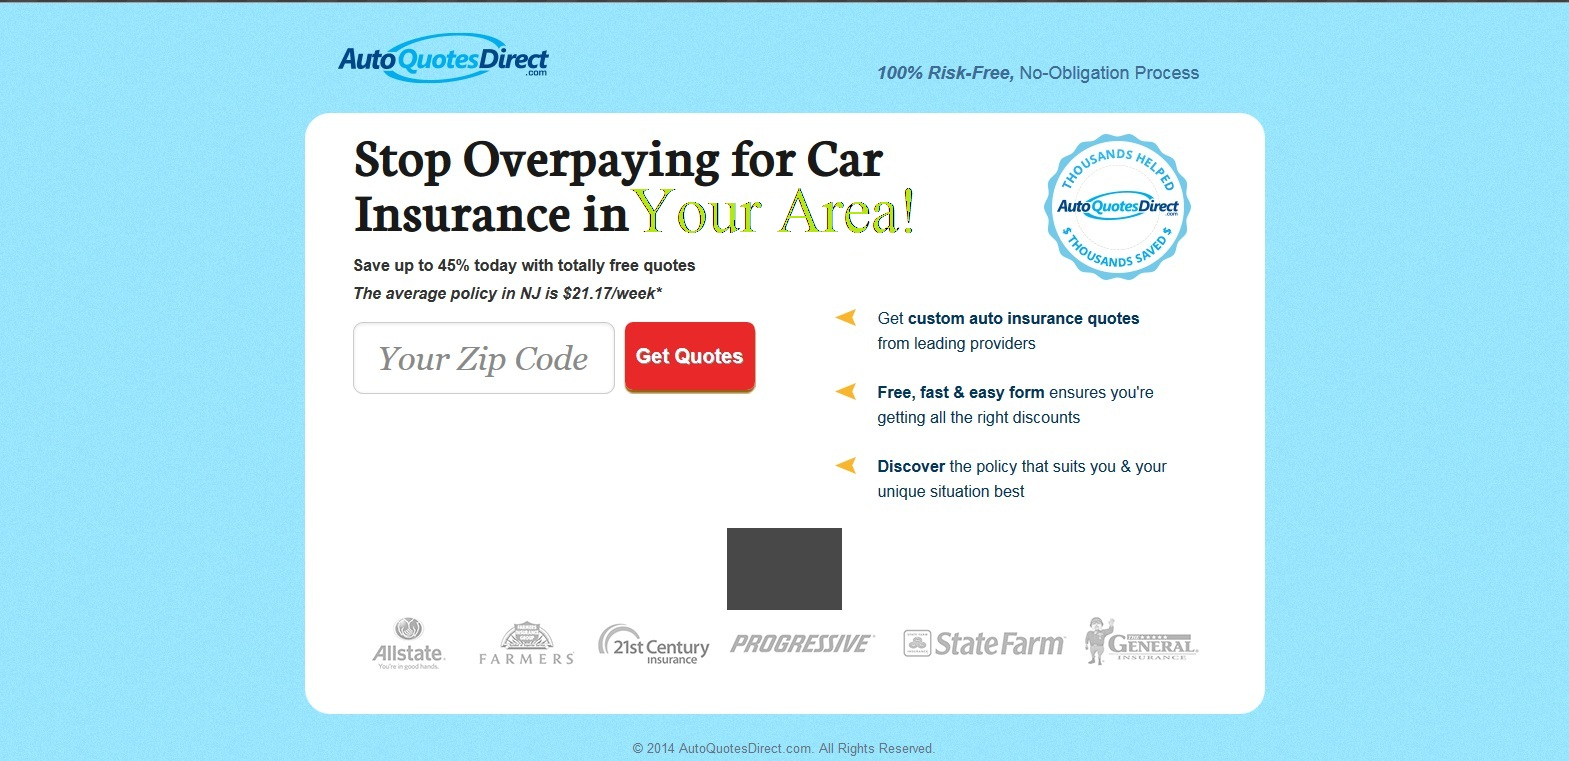 Direct General Quote Auto Quotes Direct Affiliate Program